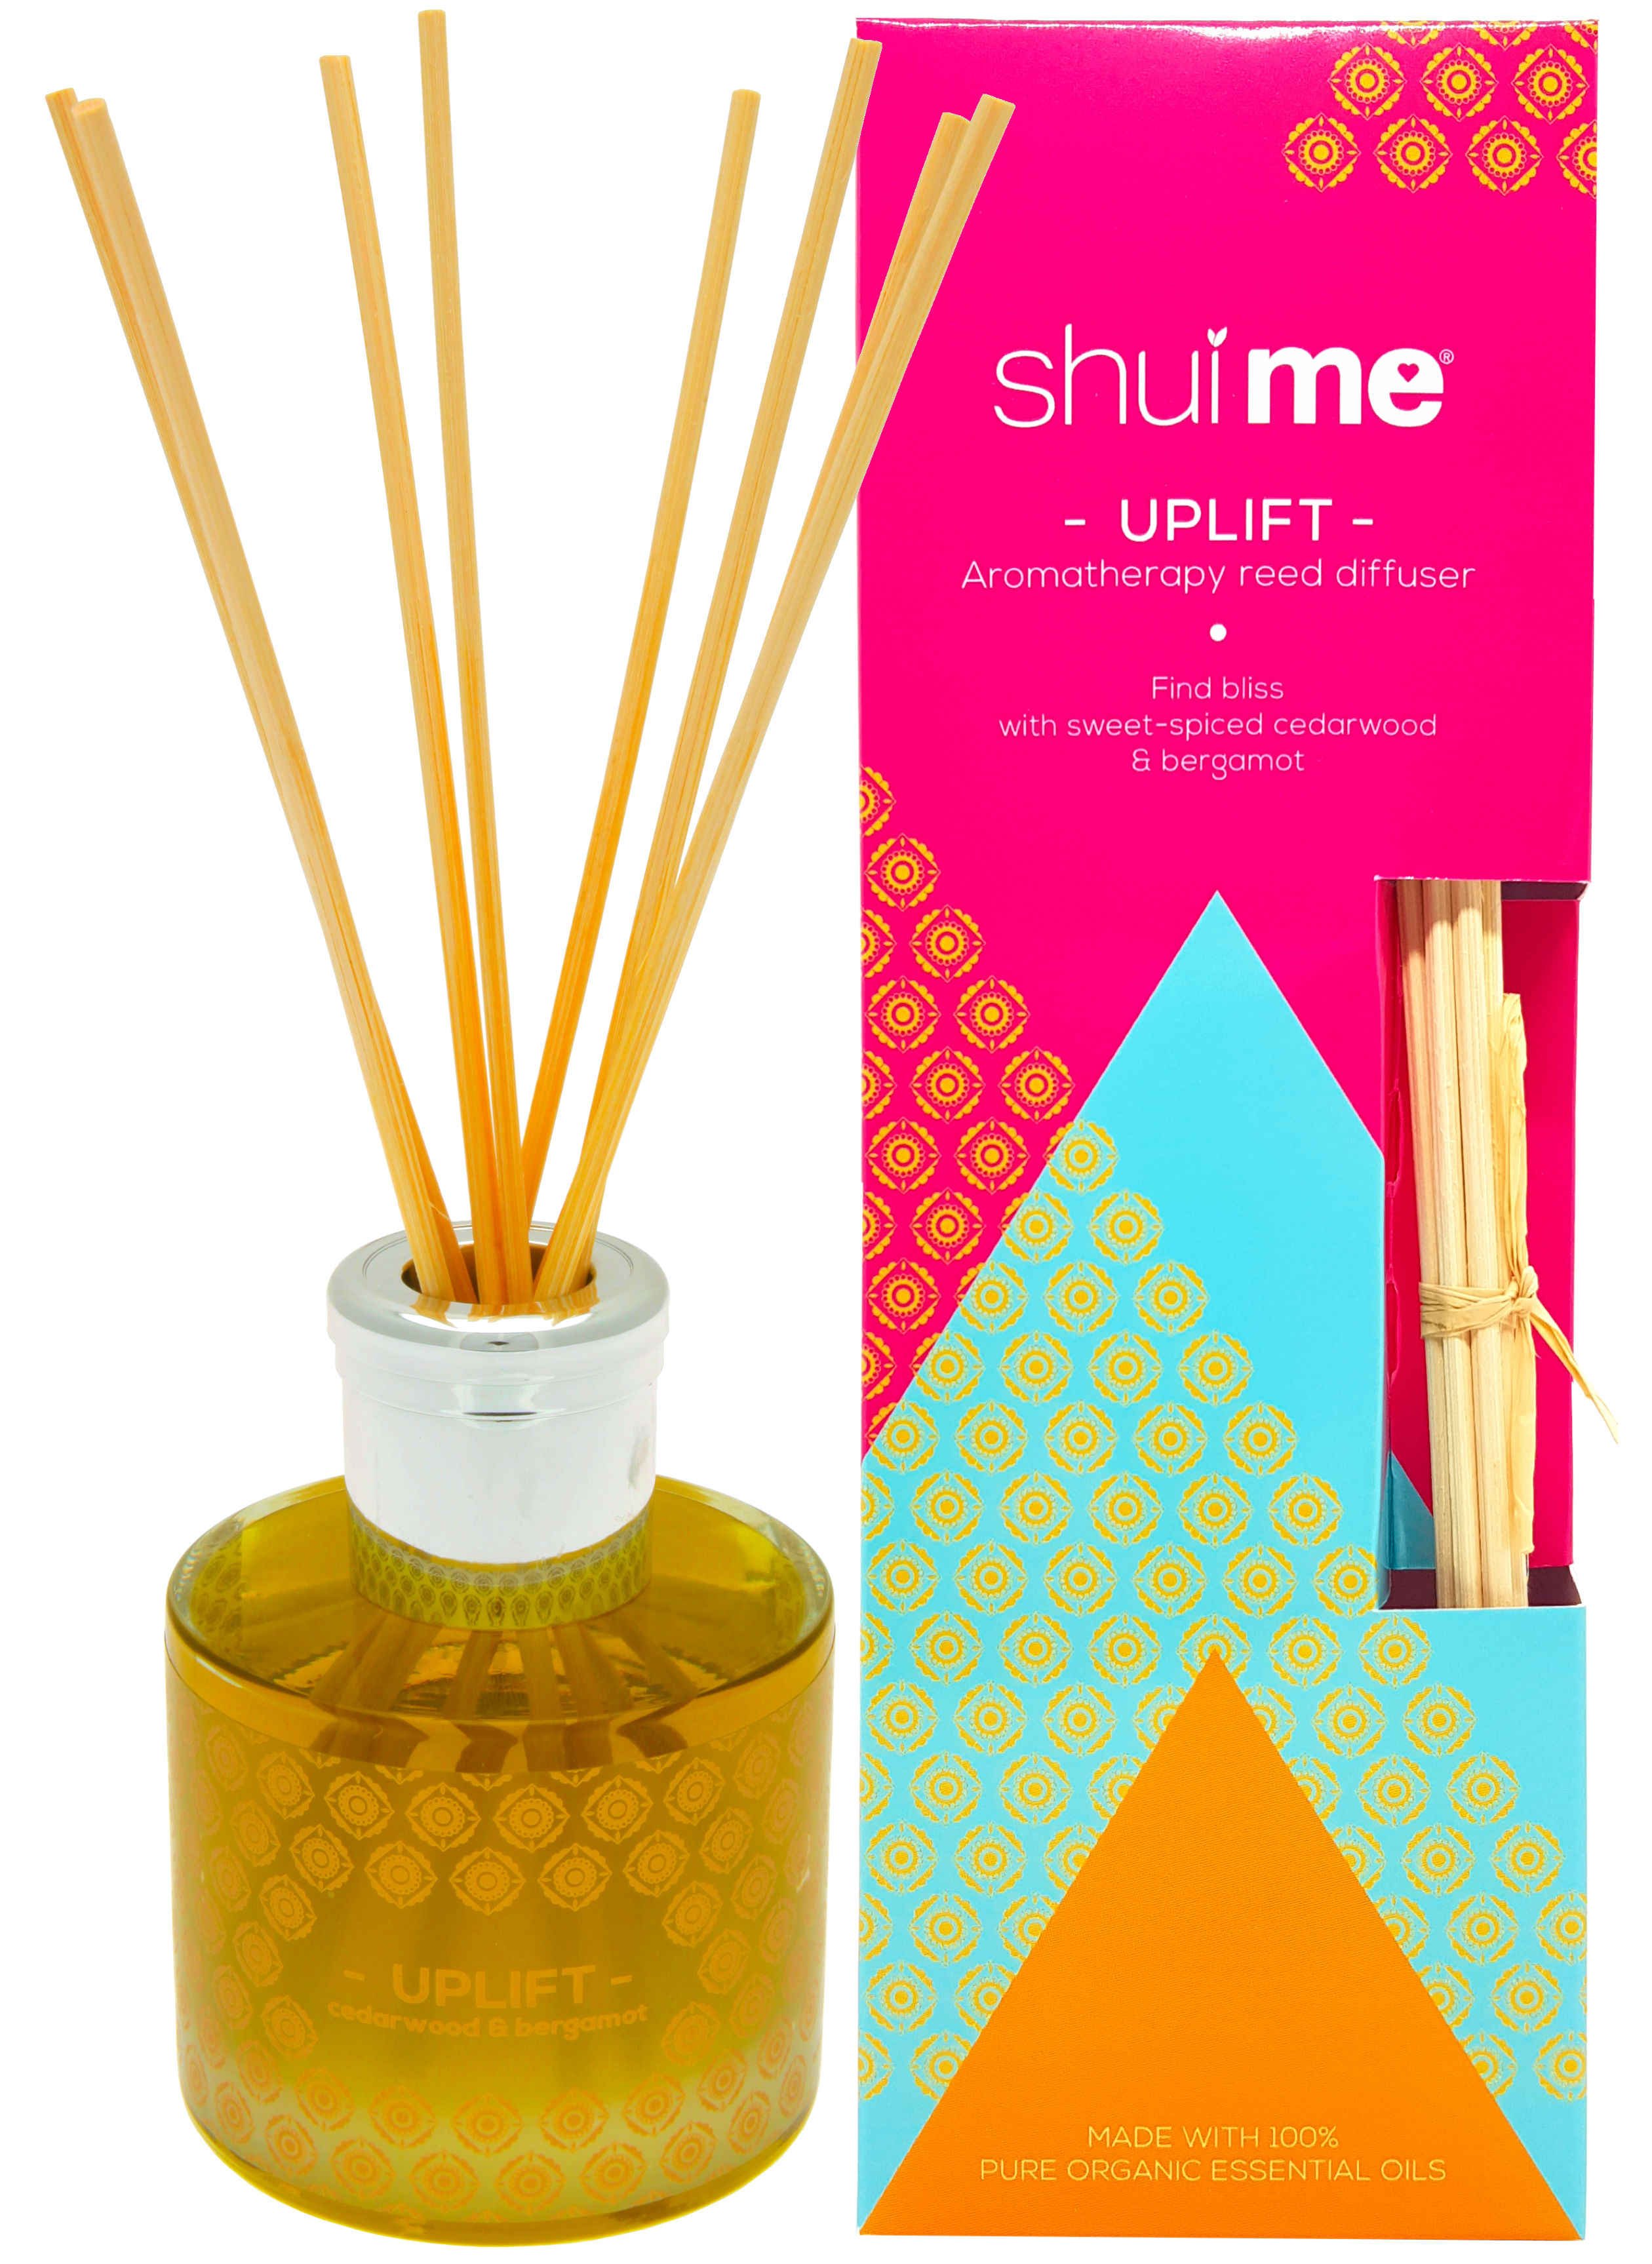 Shui Me Uplift Reed Diffuser (1)